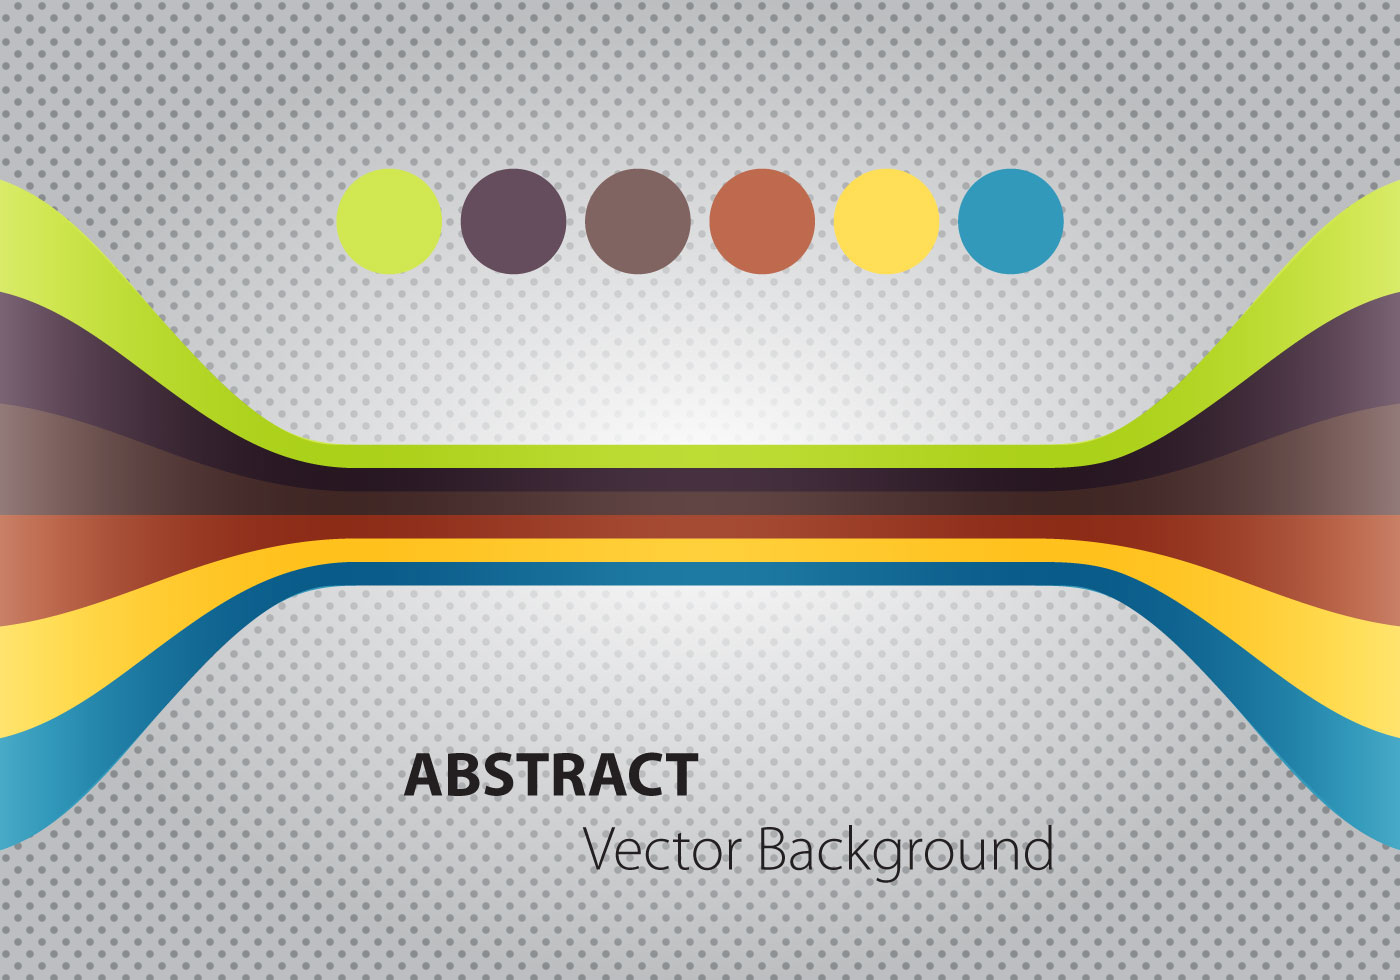 Abstract halftone circle banner vector download free vector art.